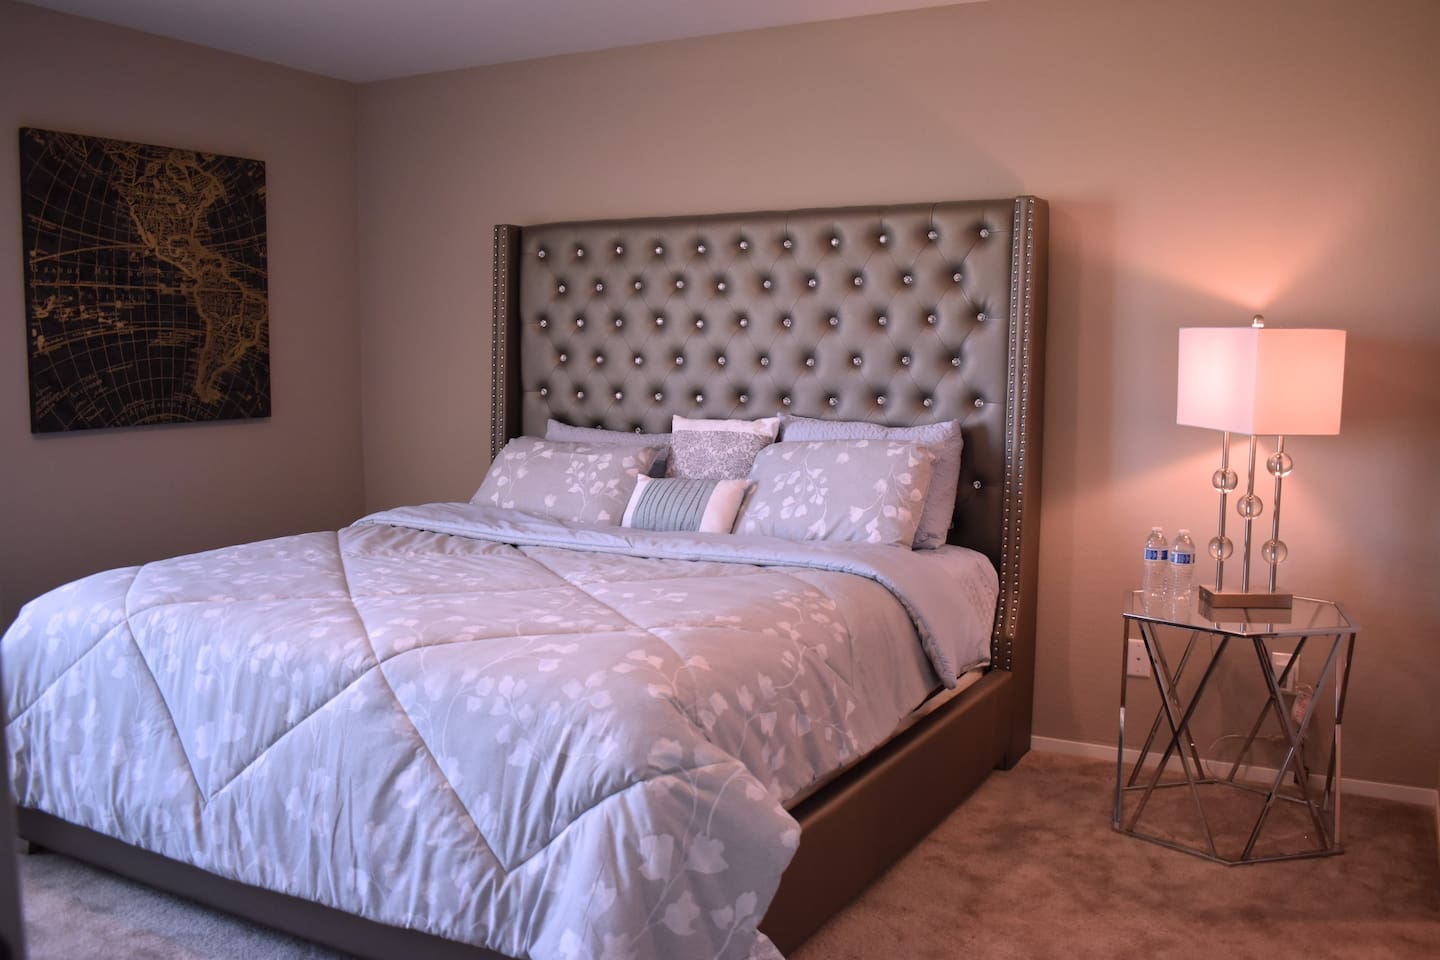 Luxury Private Clean Modern Bedroom, Safe neighb.